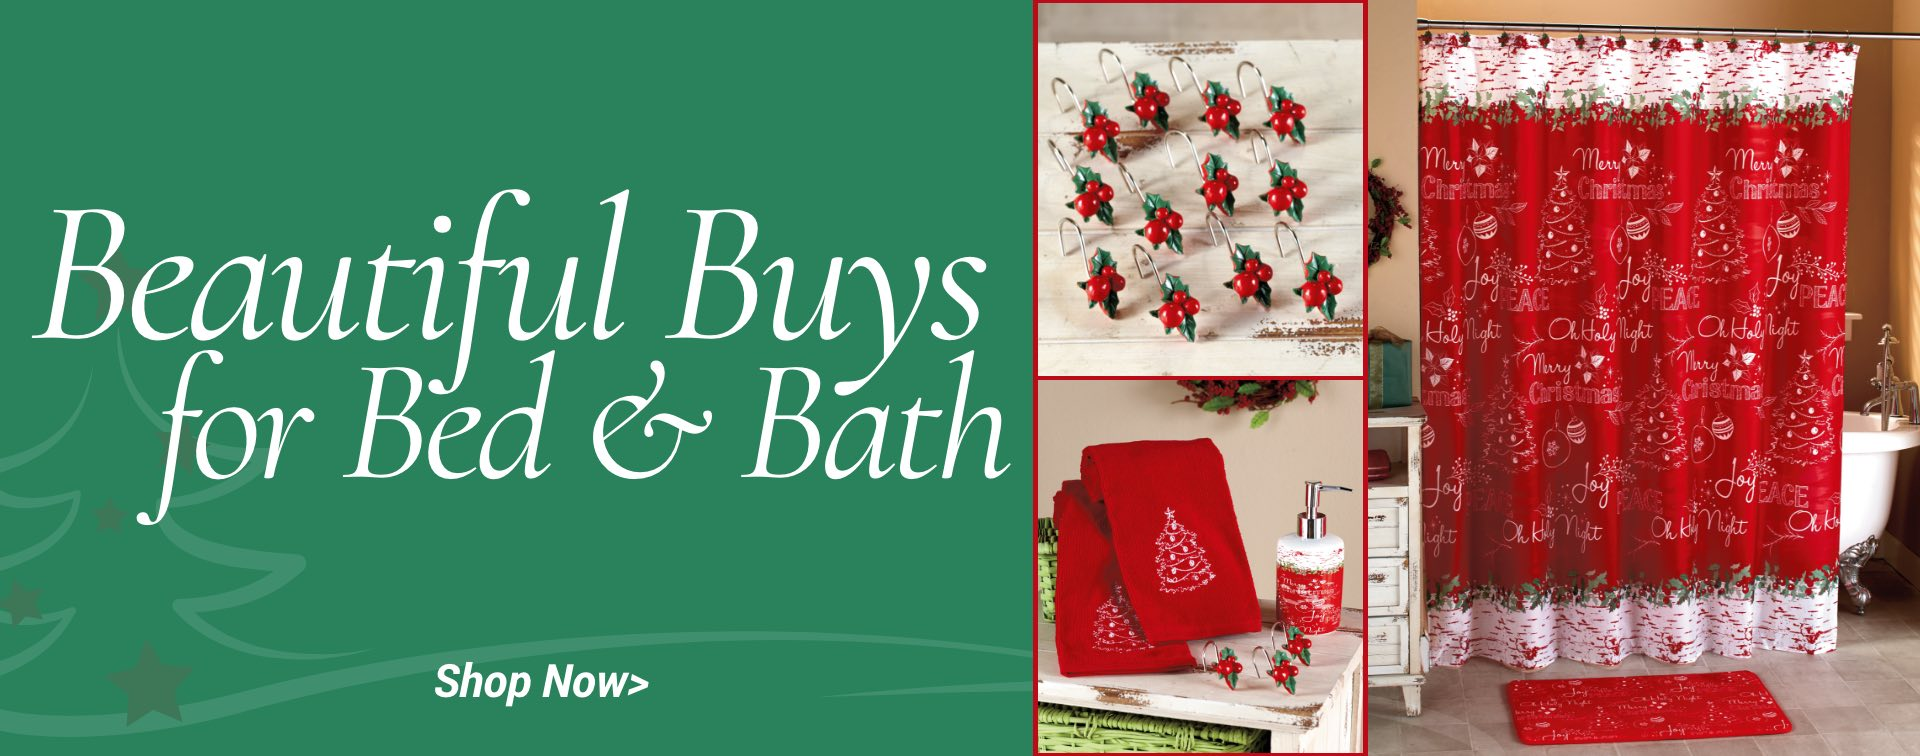 Beautiful buys for bed & bath. Shop now.